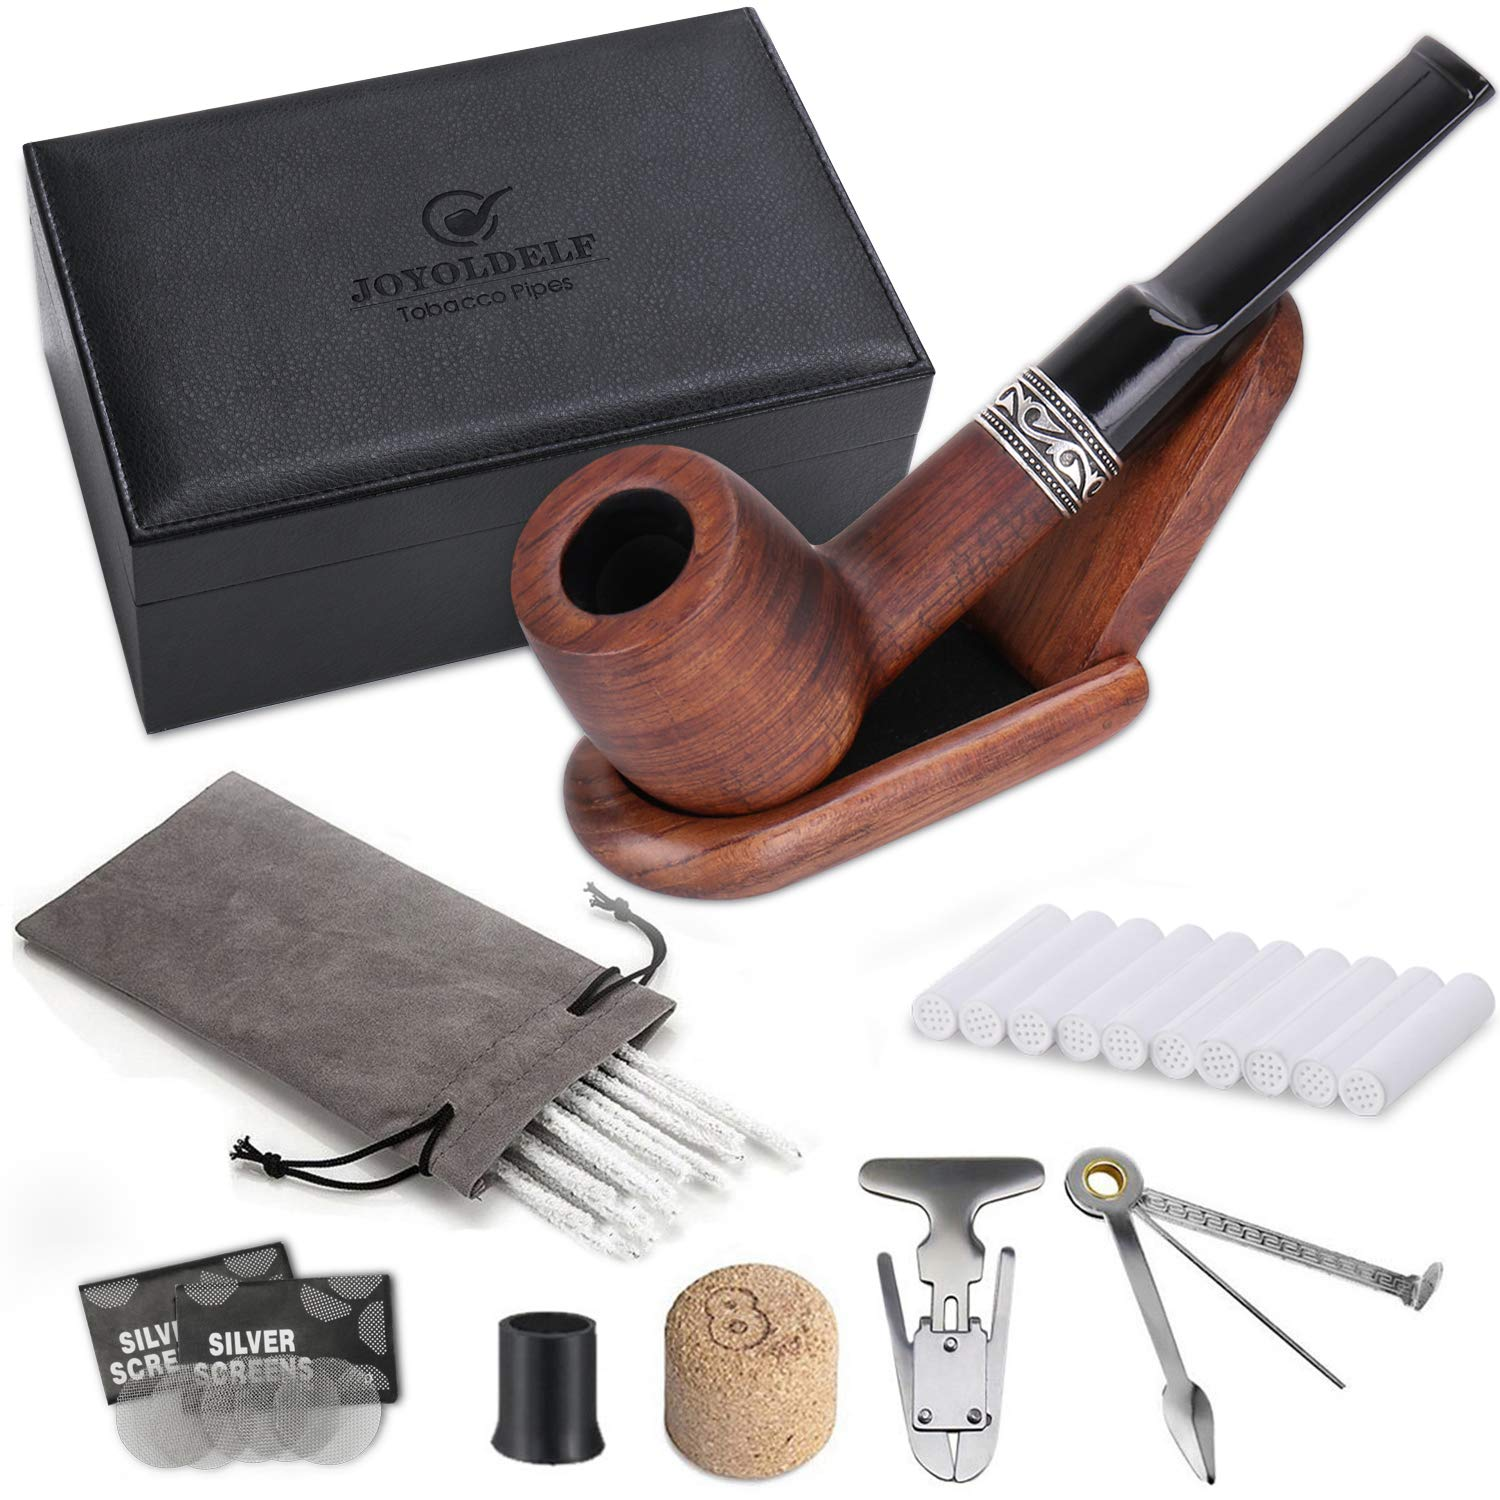 Joyoldelf Billiard Rosewood Tobacco Pipe Set, Wooden Pipe with Foldable Pipe Stand Holder, 3-in-1 Pipe Scraper and Other Smoking Accessories